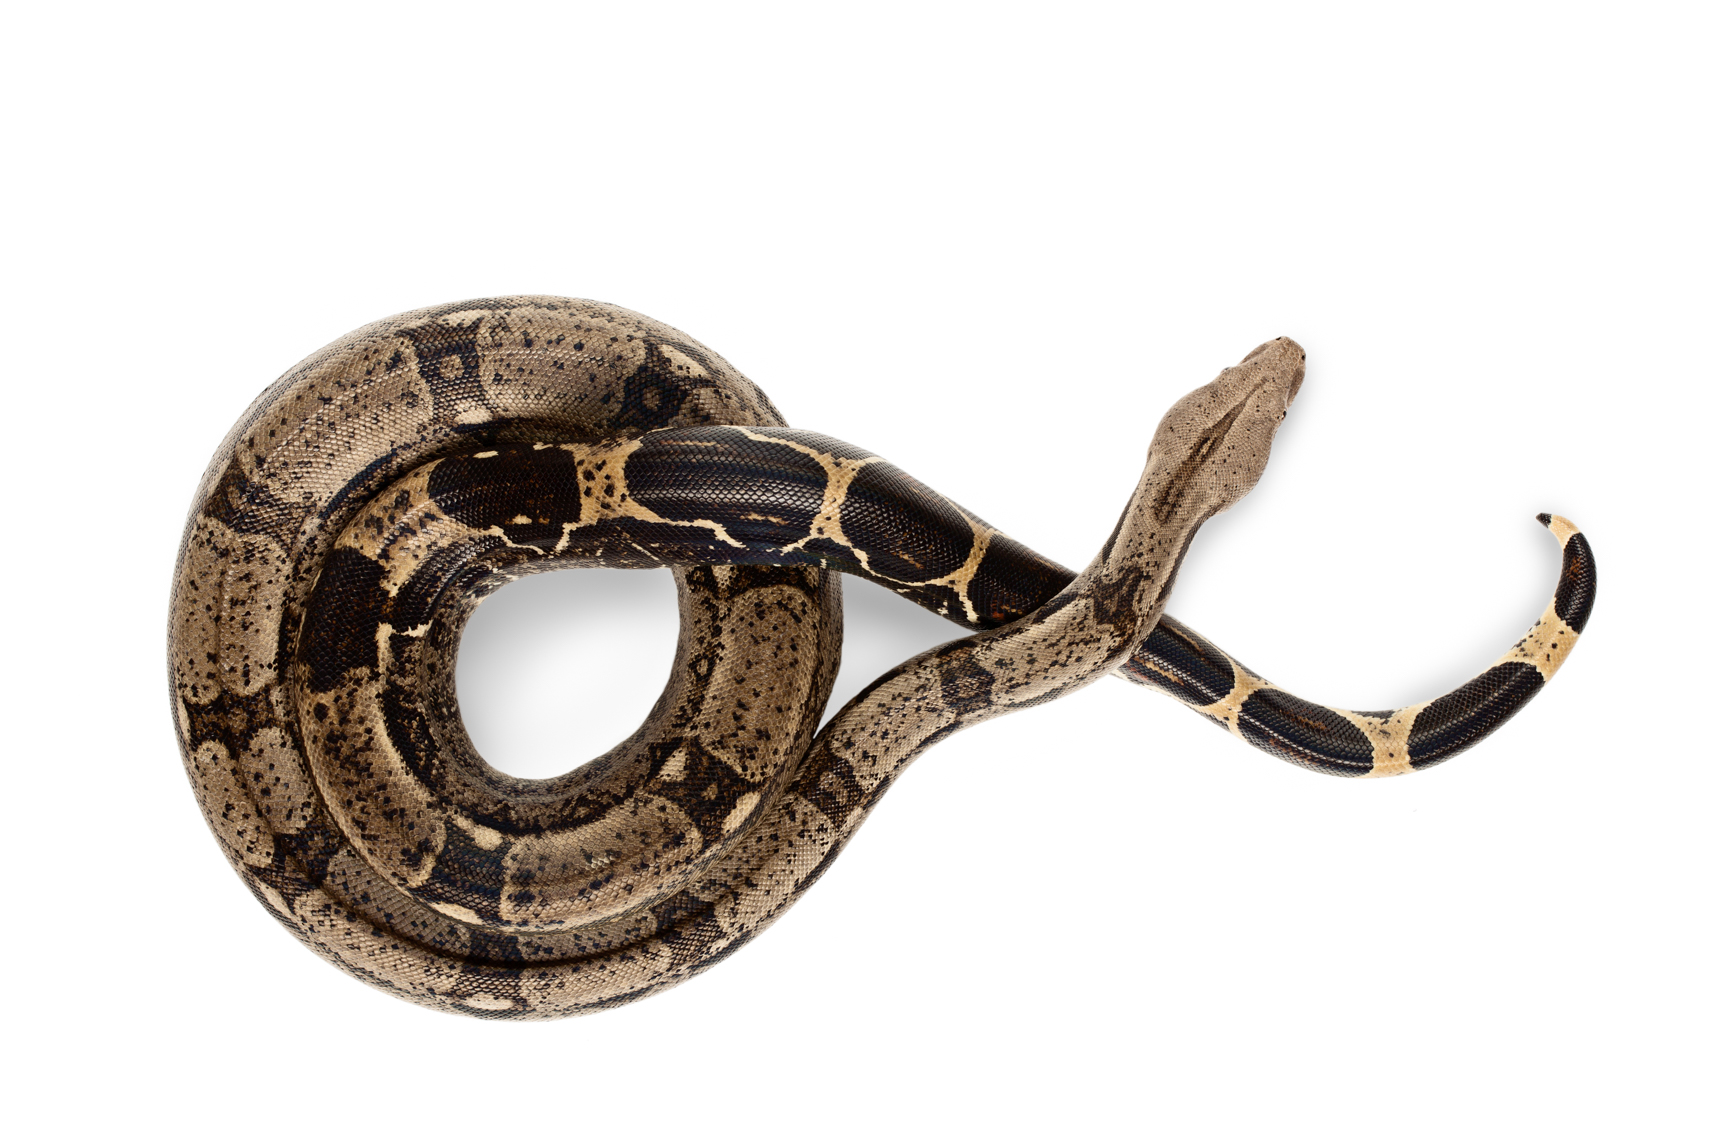 Columbian Red-Tailed Boa snake photographed from above